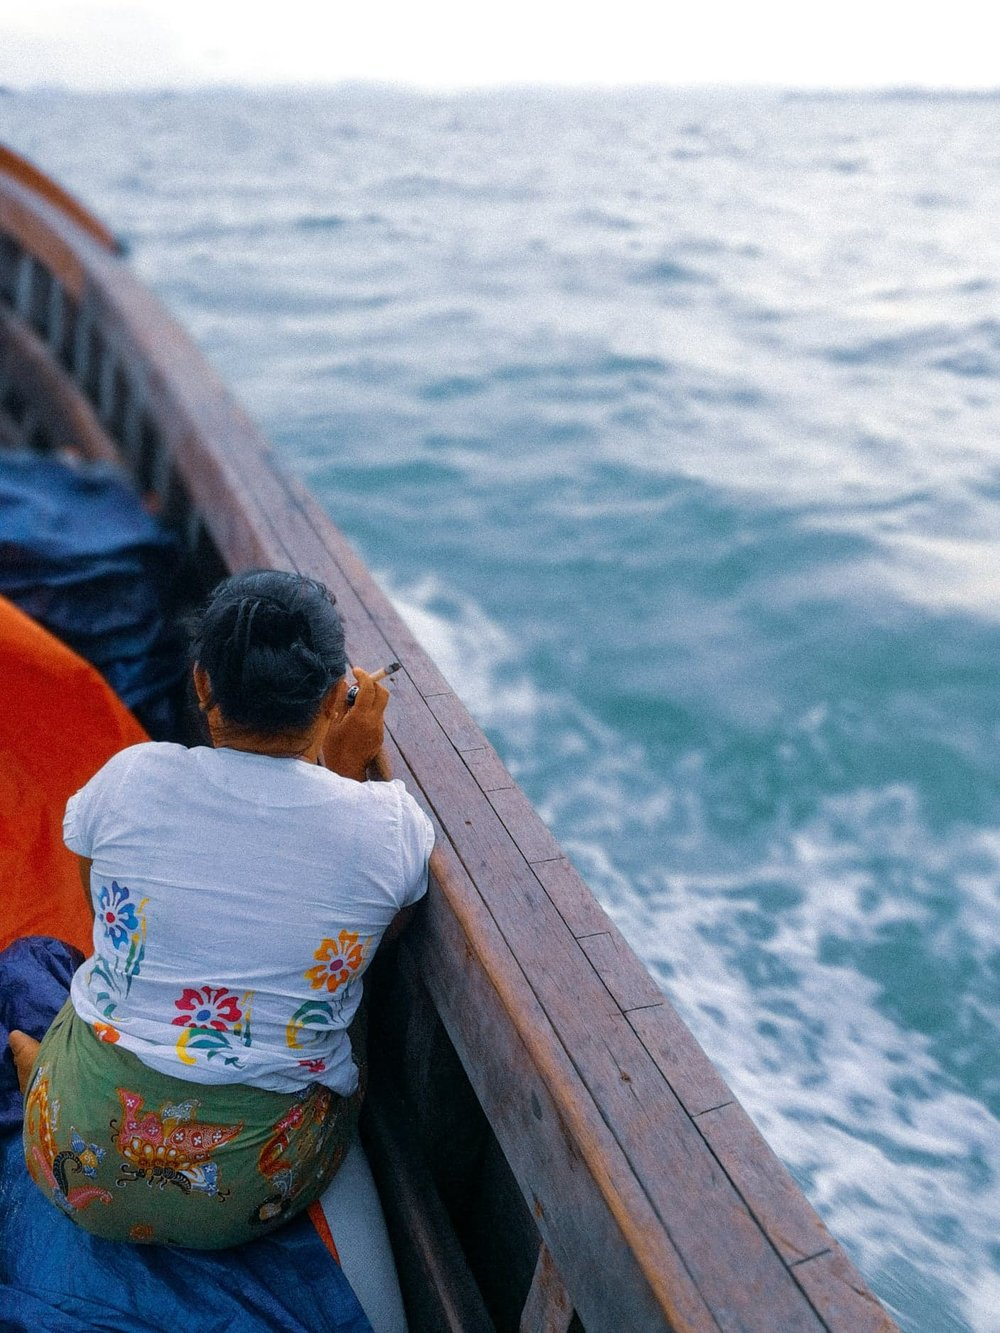 On a boat from Myeik City going to a remote island (Dome Island) in Myanmar's Mergui Archipelago. The woman in this photo is smoking cheroot cigar which are widely popular in Burma and India.